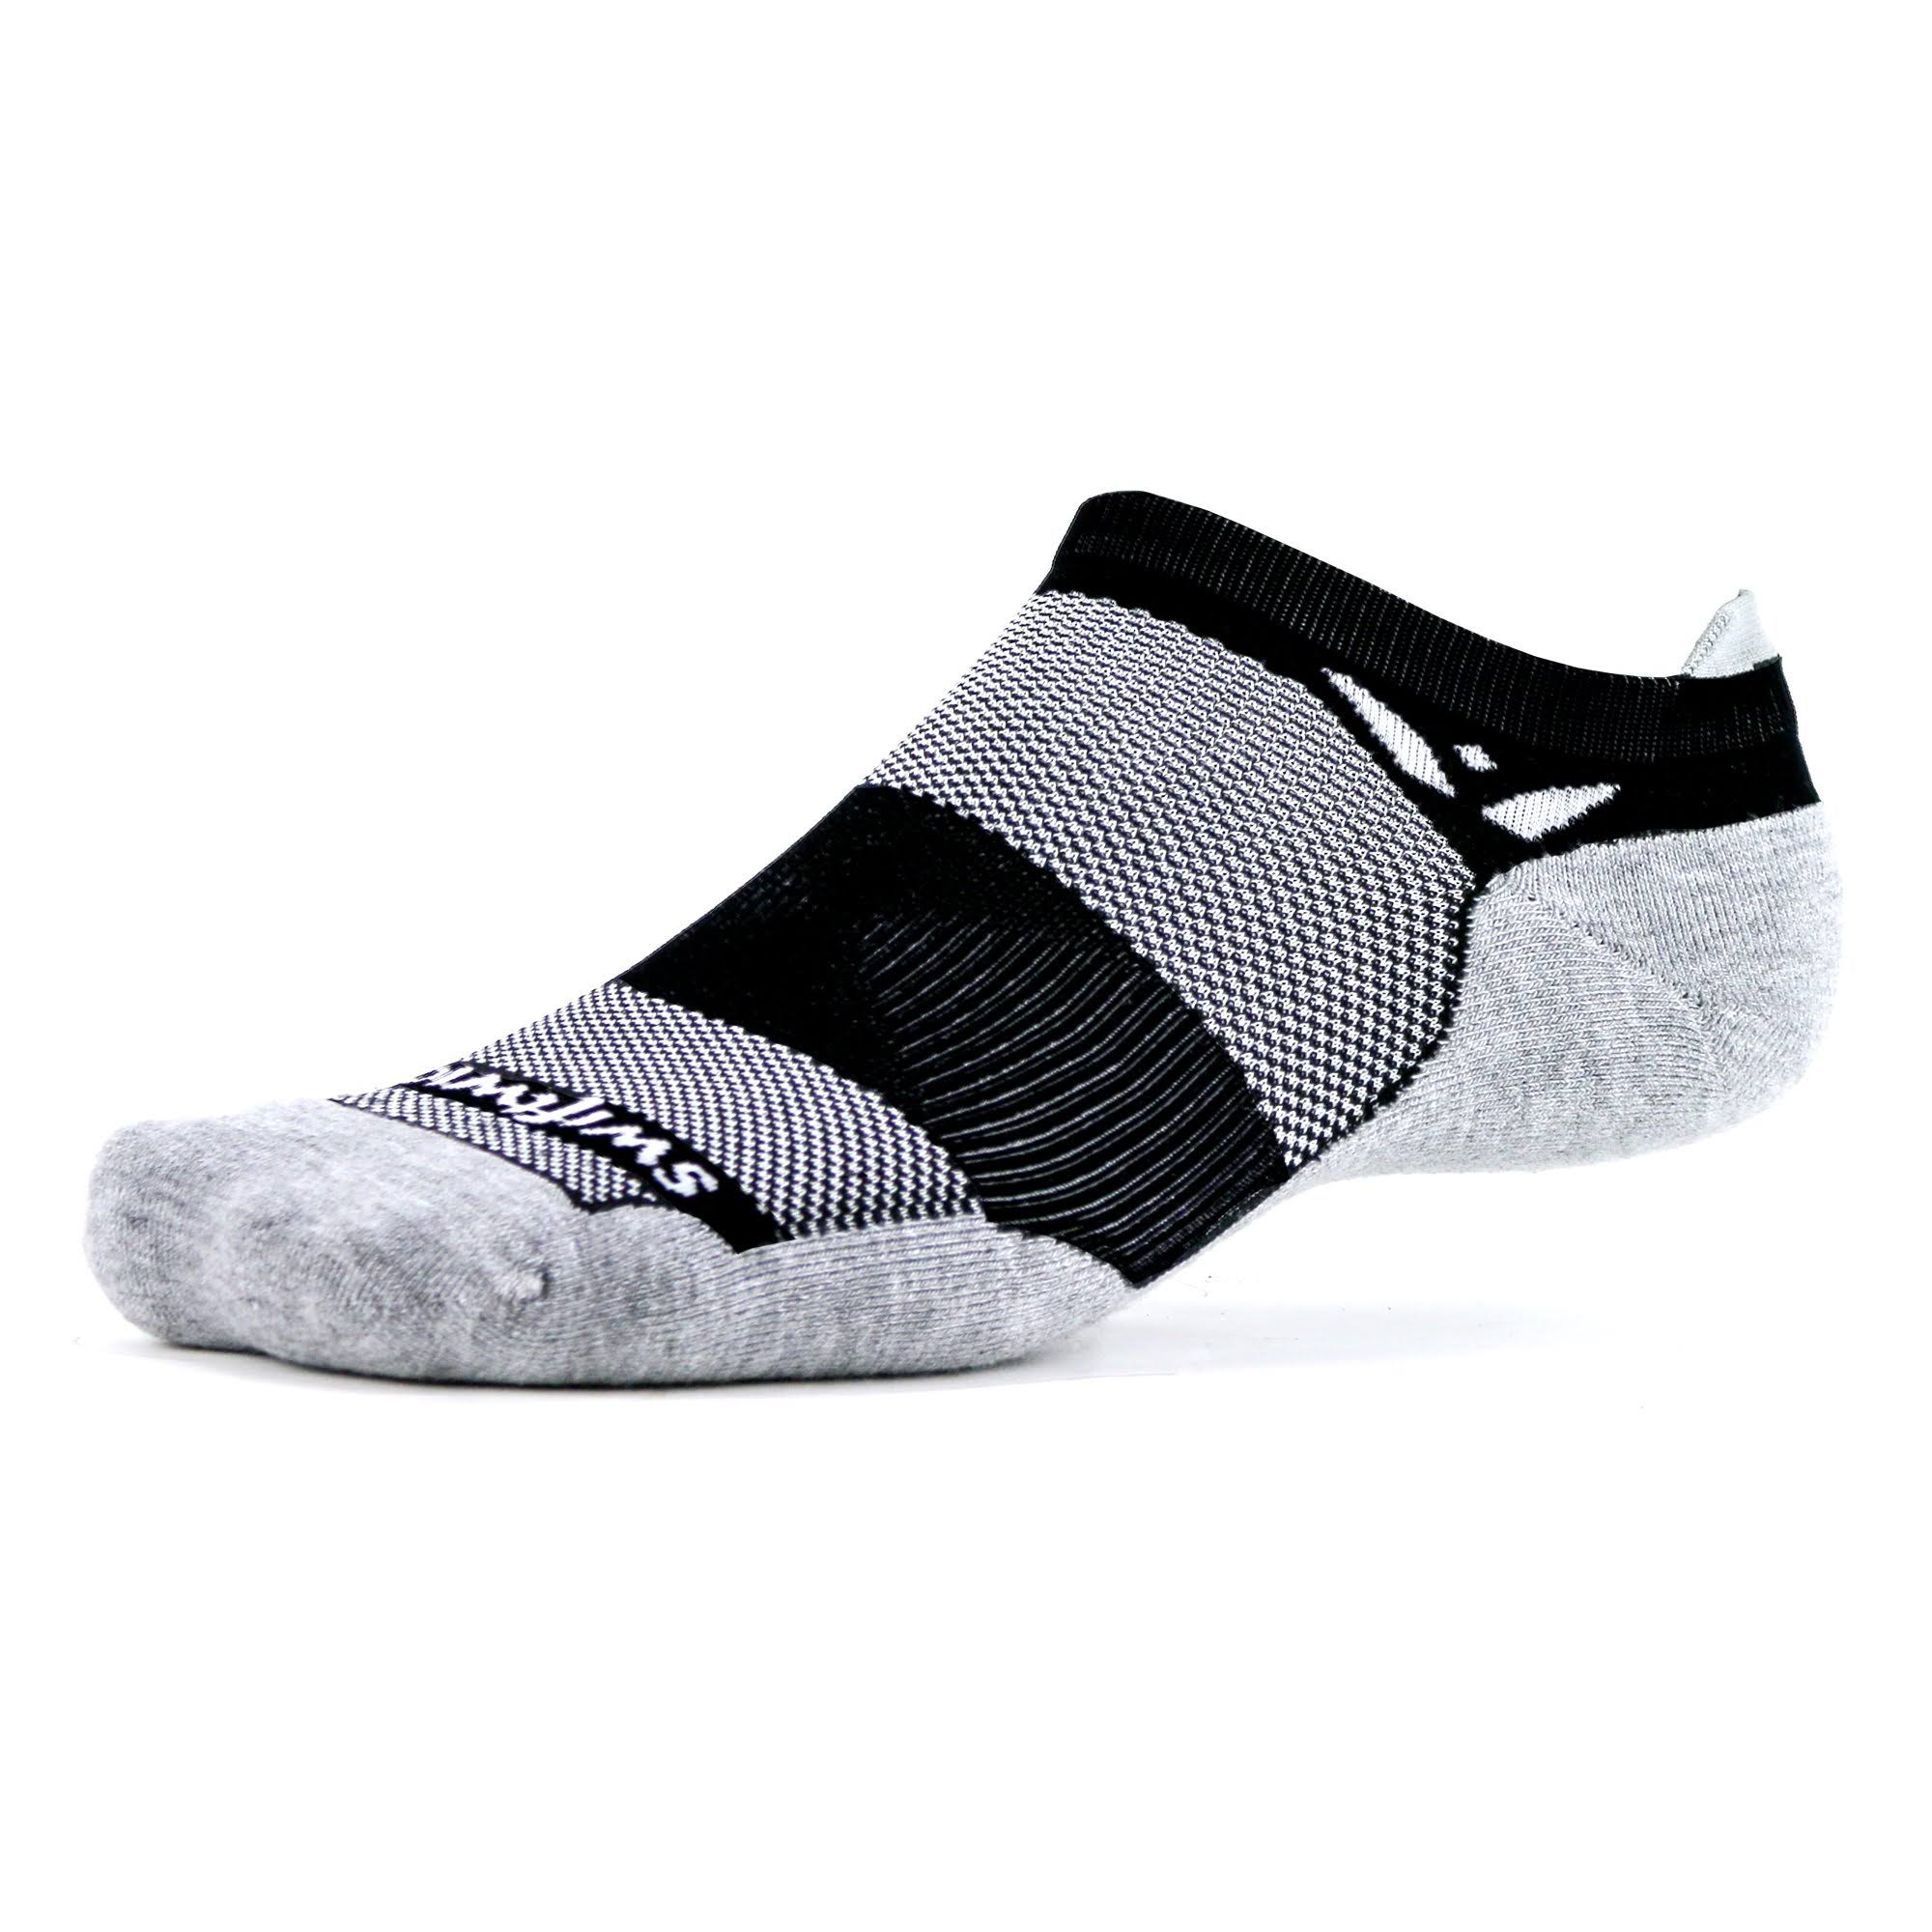 Swiftwick Maxus Zero Tab Socks-Black XL